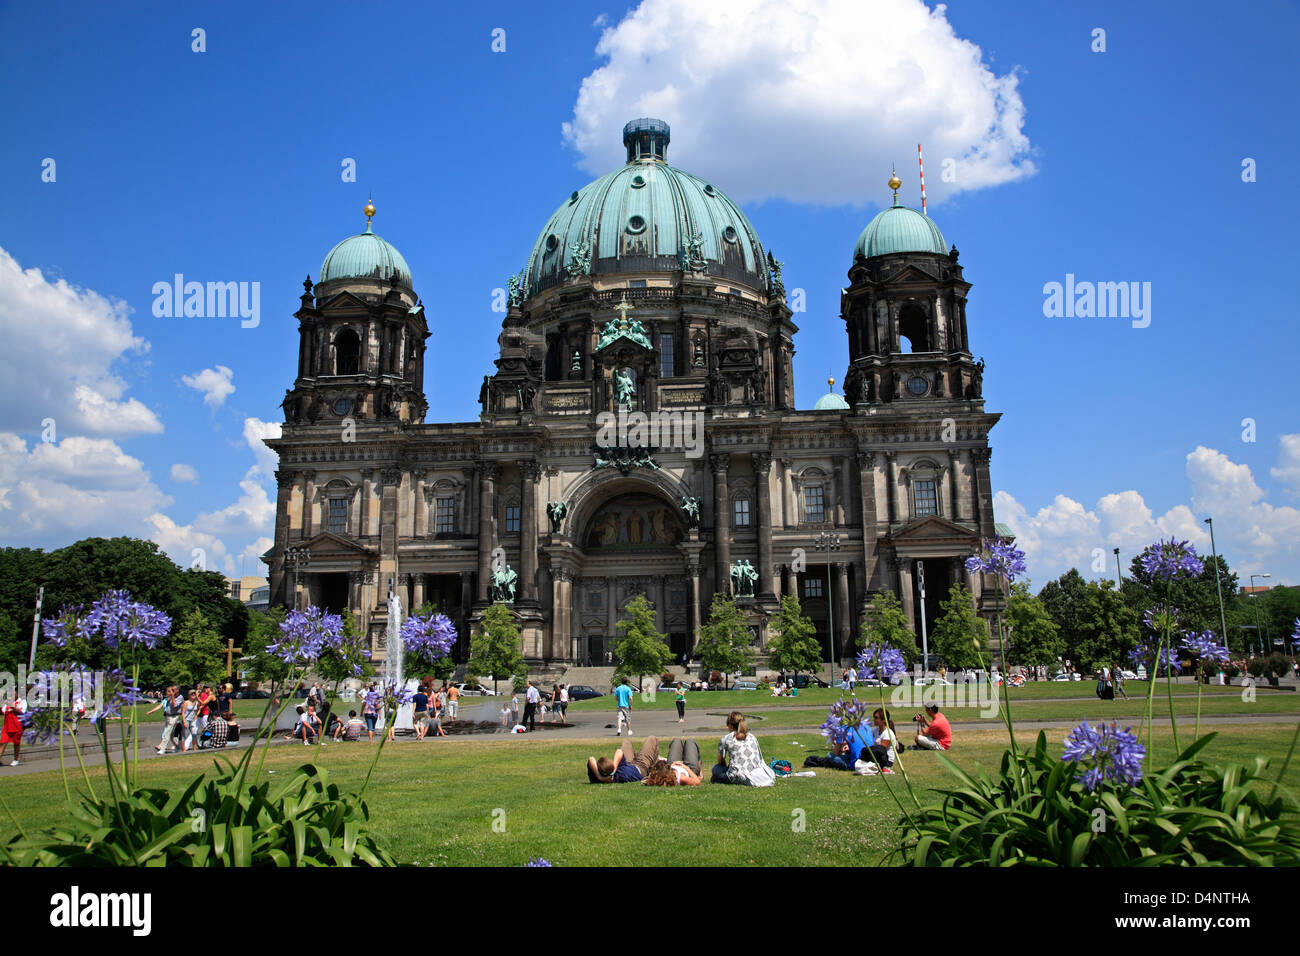 Berlin, Berliner Dom, cathedral with Lustgarten, Germany - Stock Image